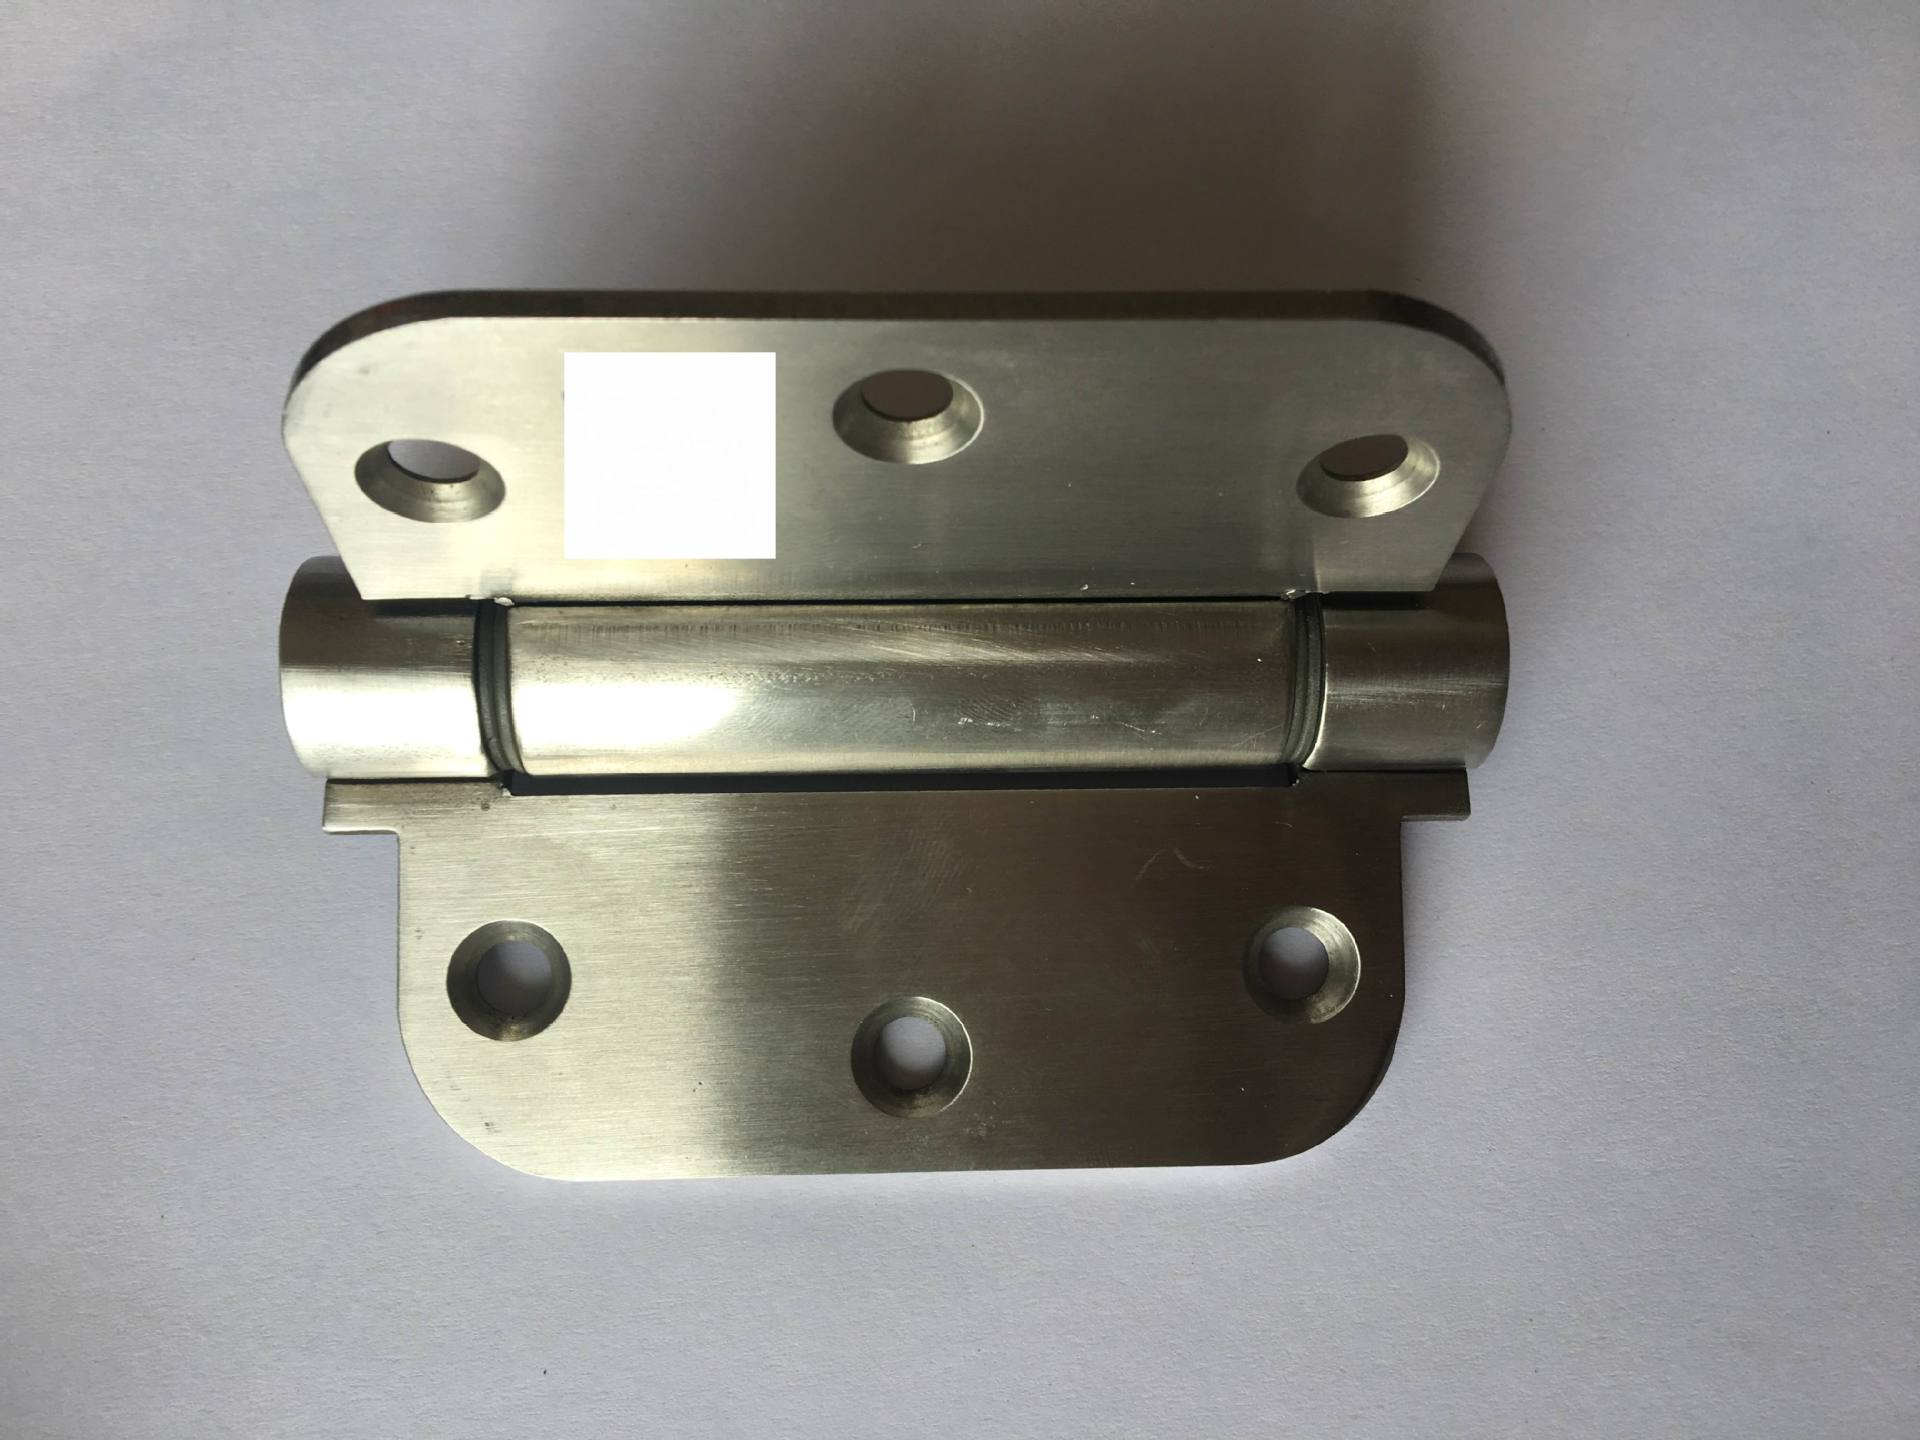 Spring Hinge Automatic Closing Torsion Silent Round Corner Hinges Flat Furniture hinges Door hinge SUS 304 stainless steel free door spring hinge bidirectional open stainless steel automatic door closing device cowboy bar wicket hinges 2pcs